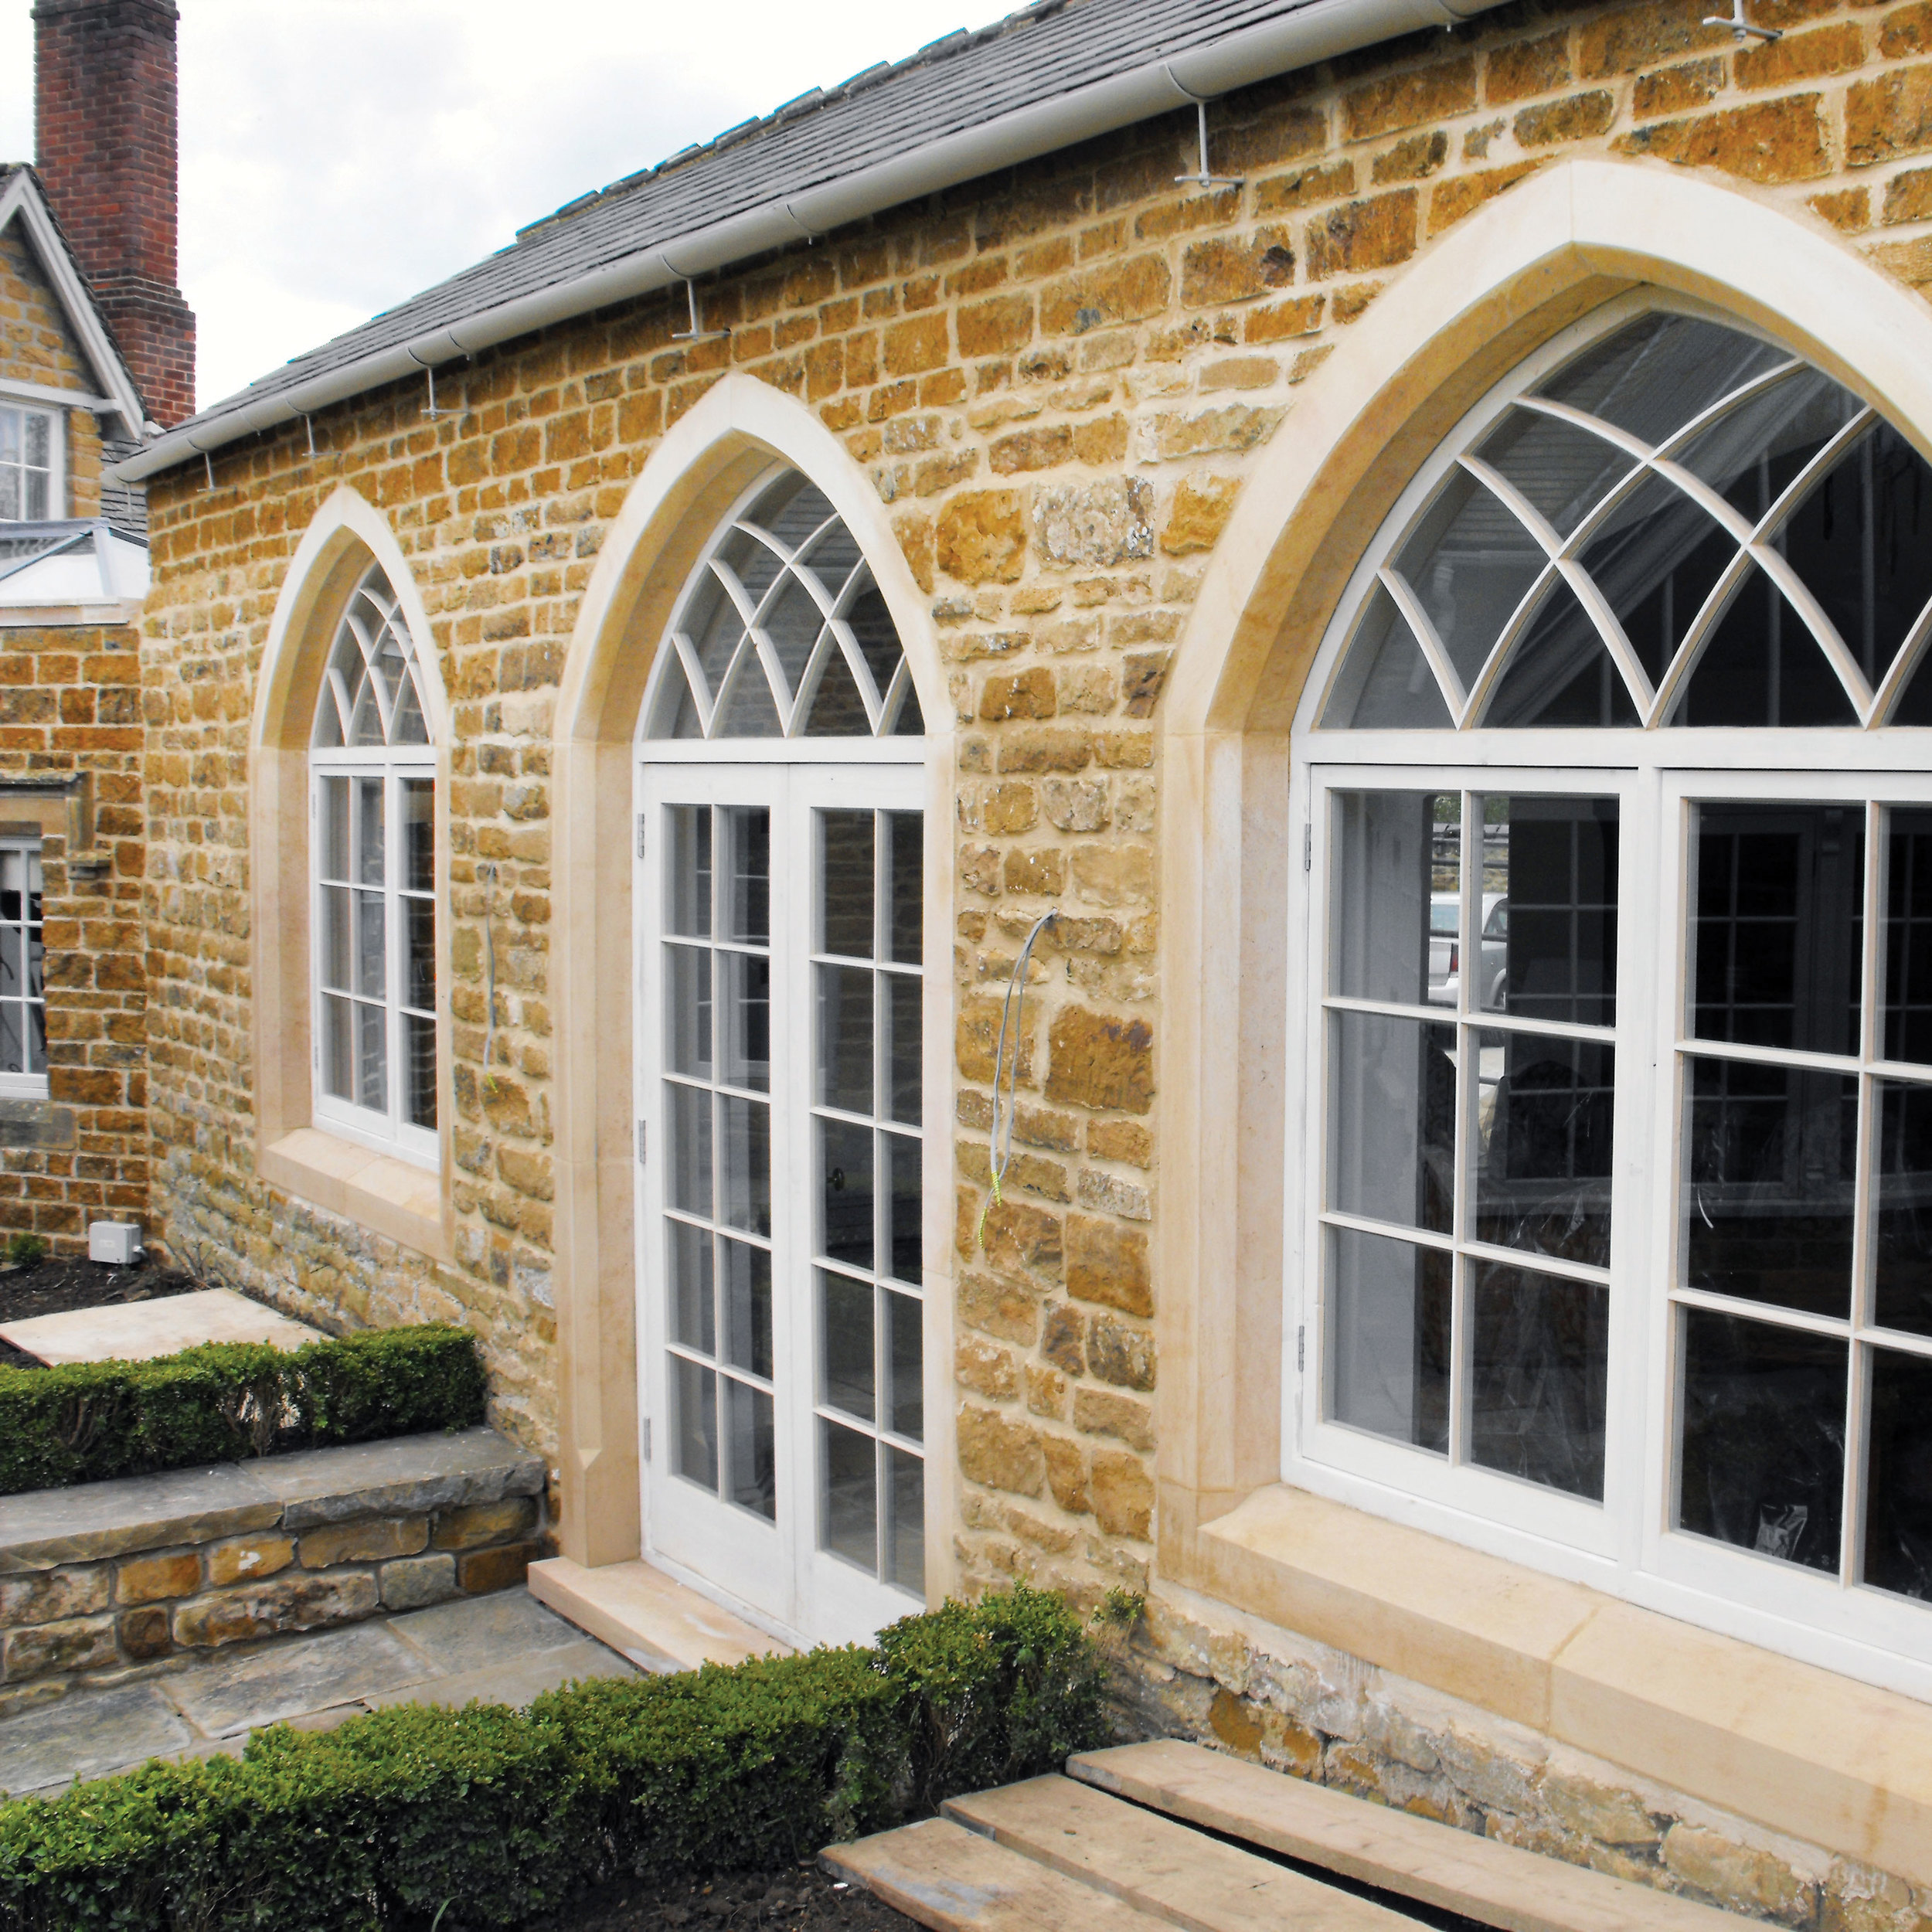 Aster Construction stonework alterations to listed buildings